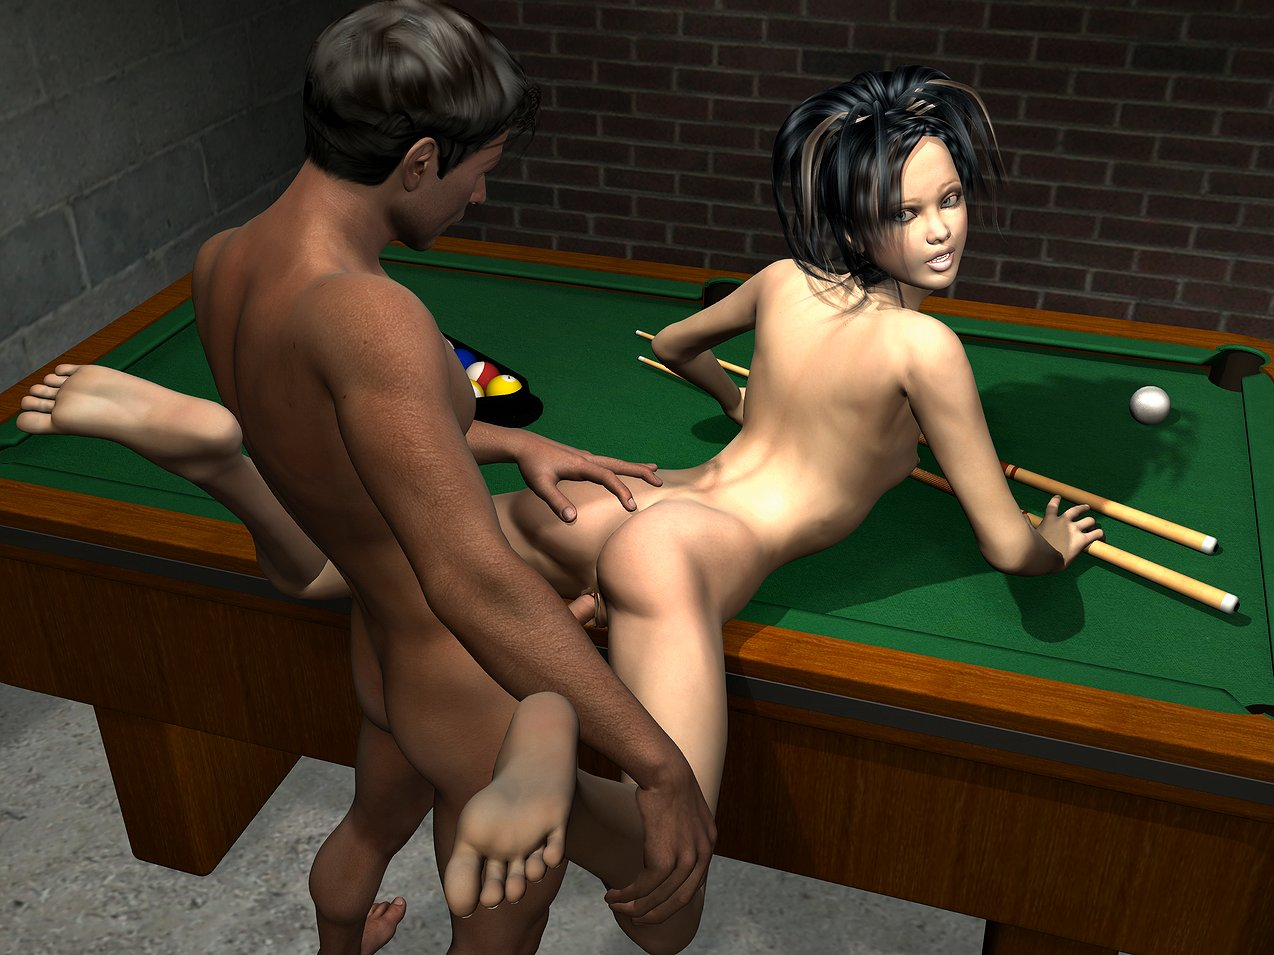 The sims cartoon porn naked videos